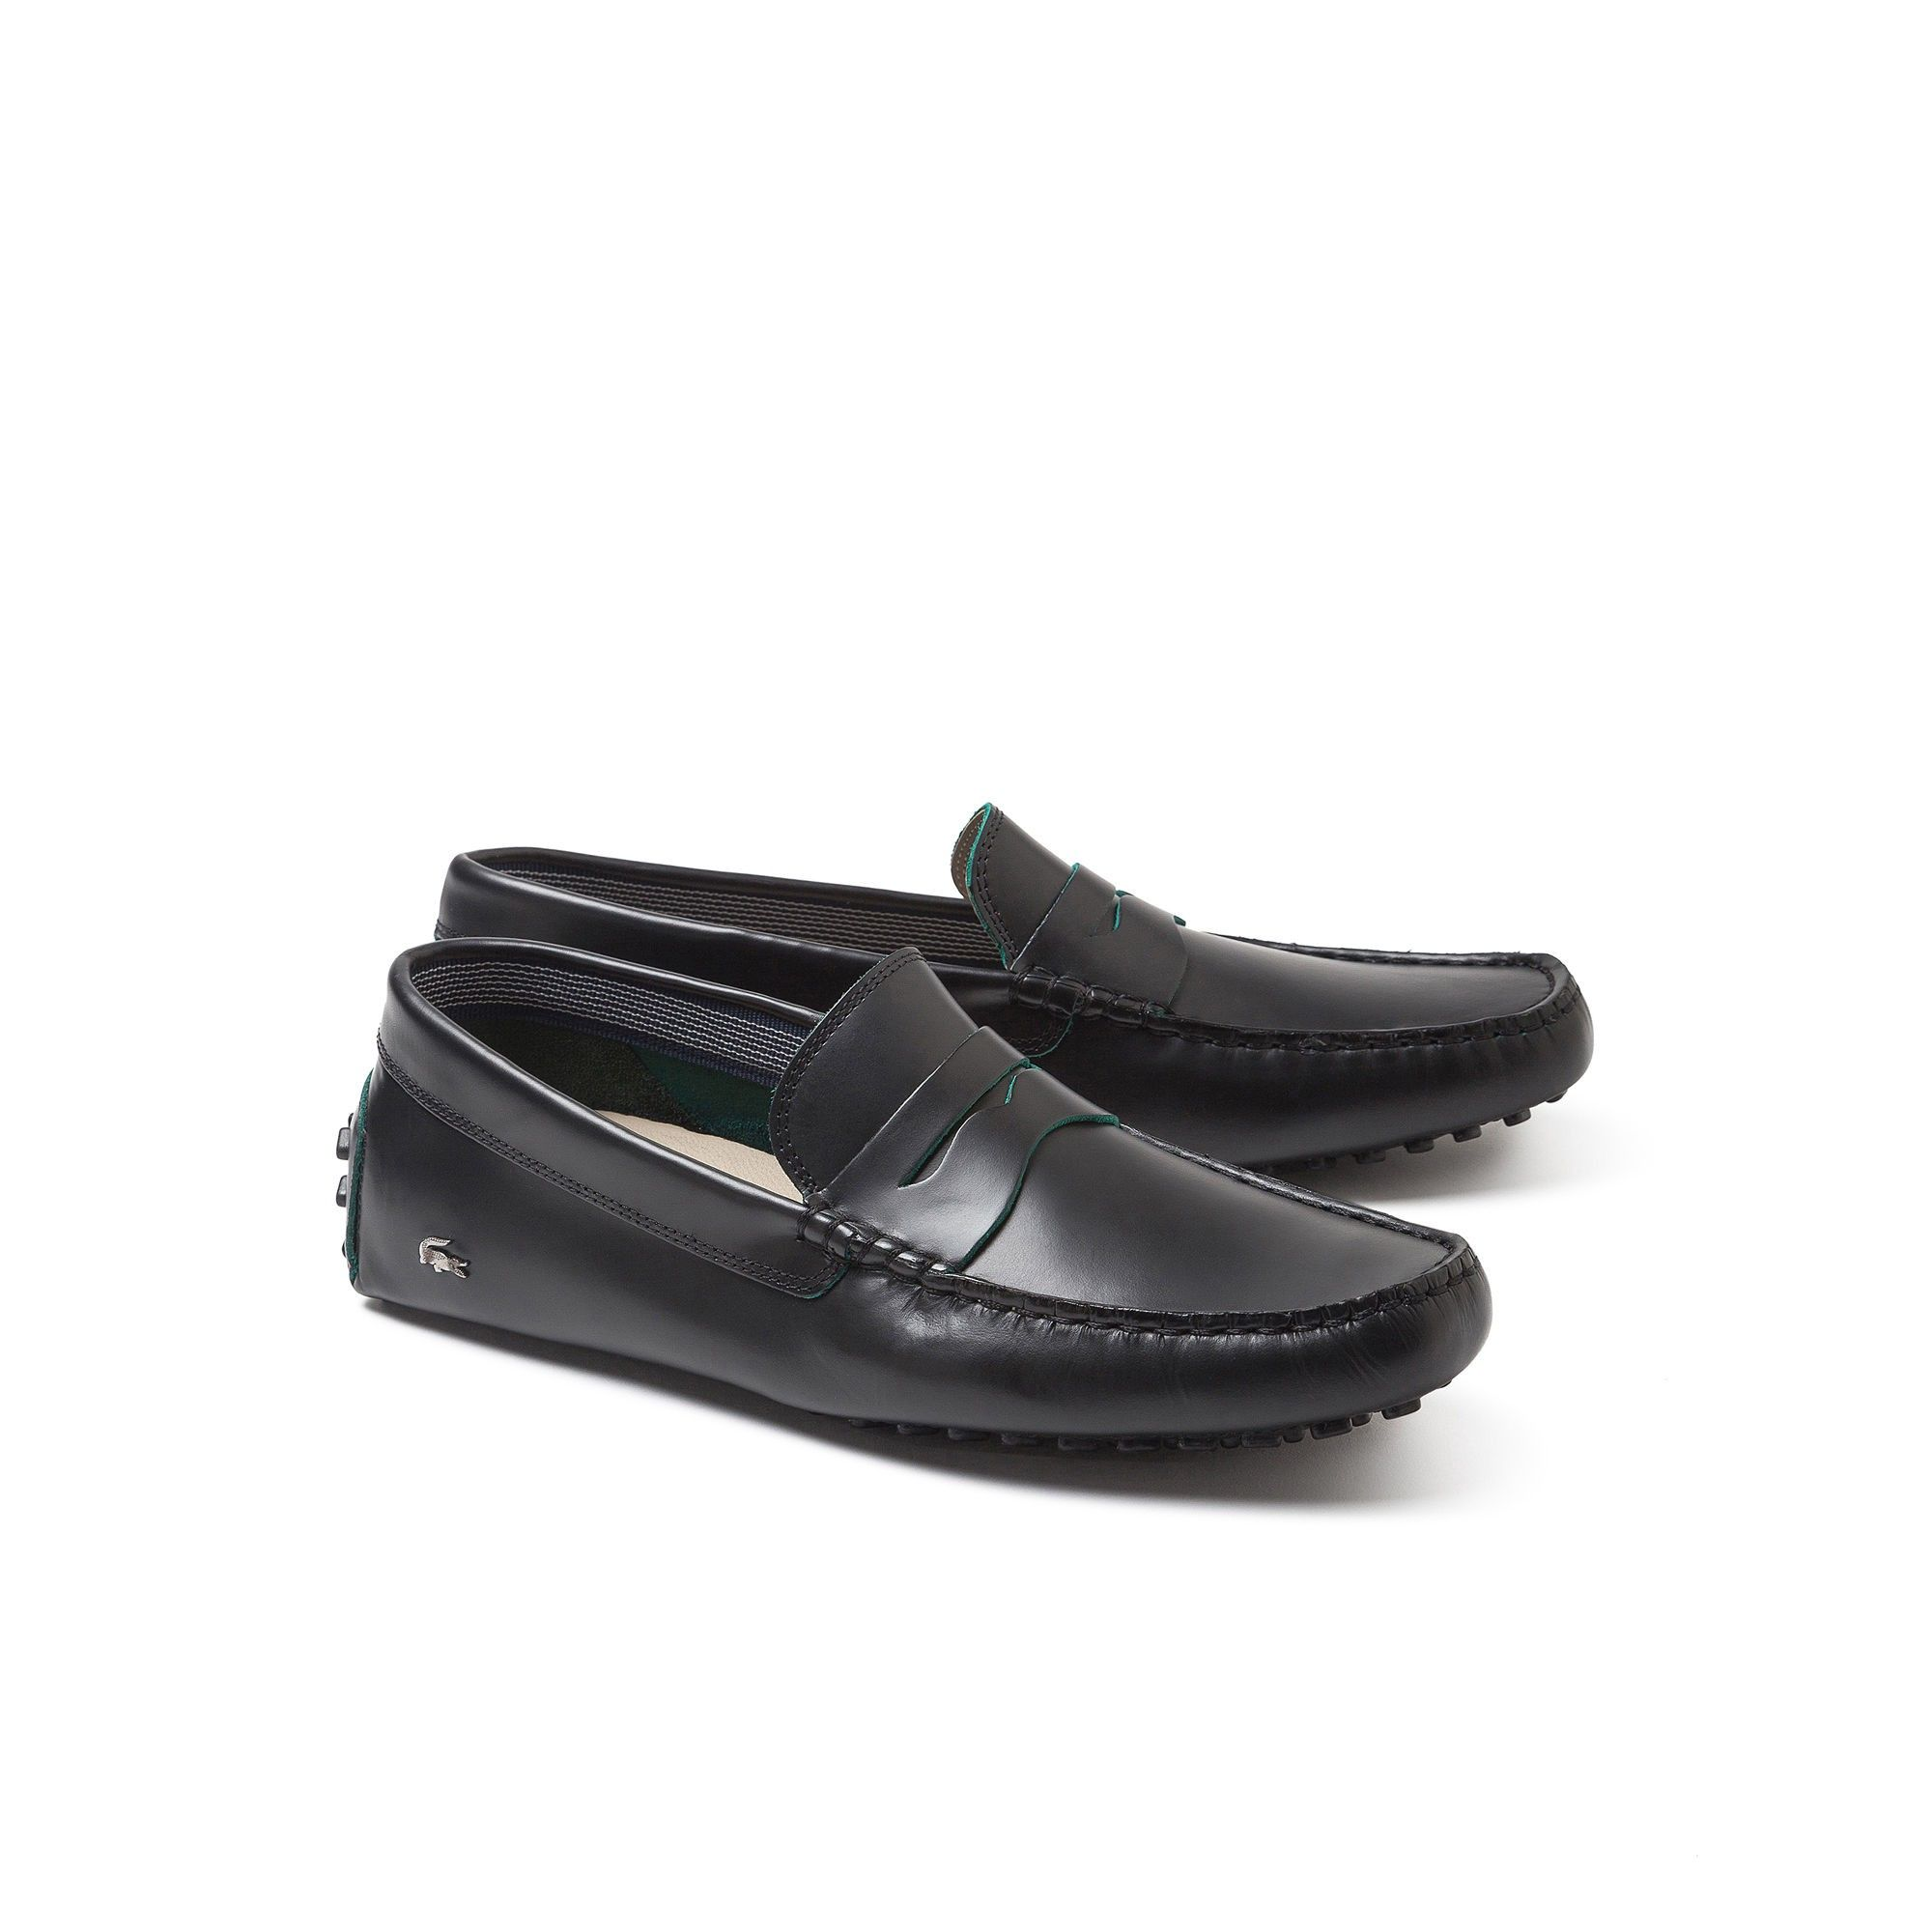 0136c662280a2c LACOSTE Men s Concours Loafer - black.  lacoste  shoes  all ...